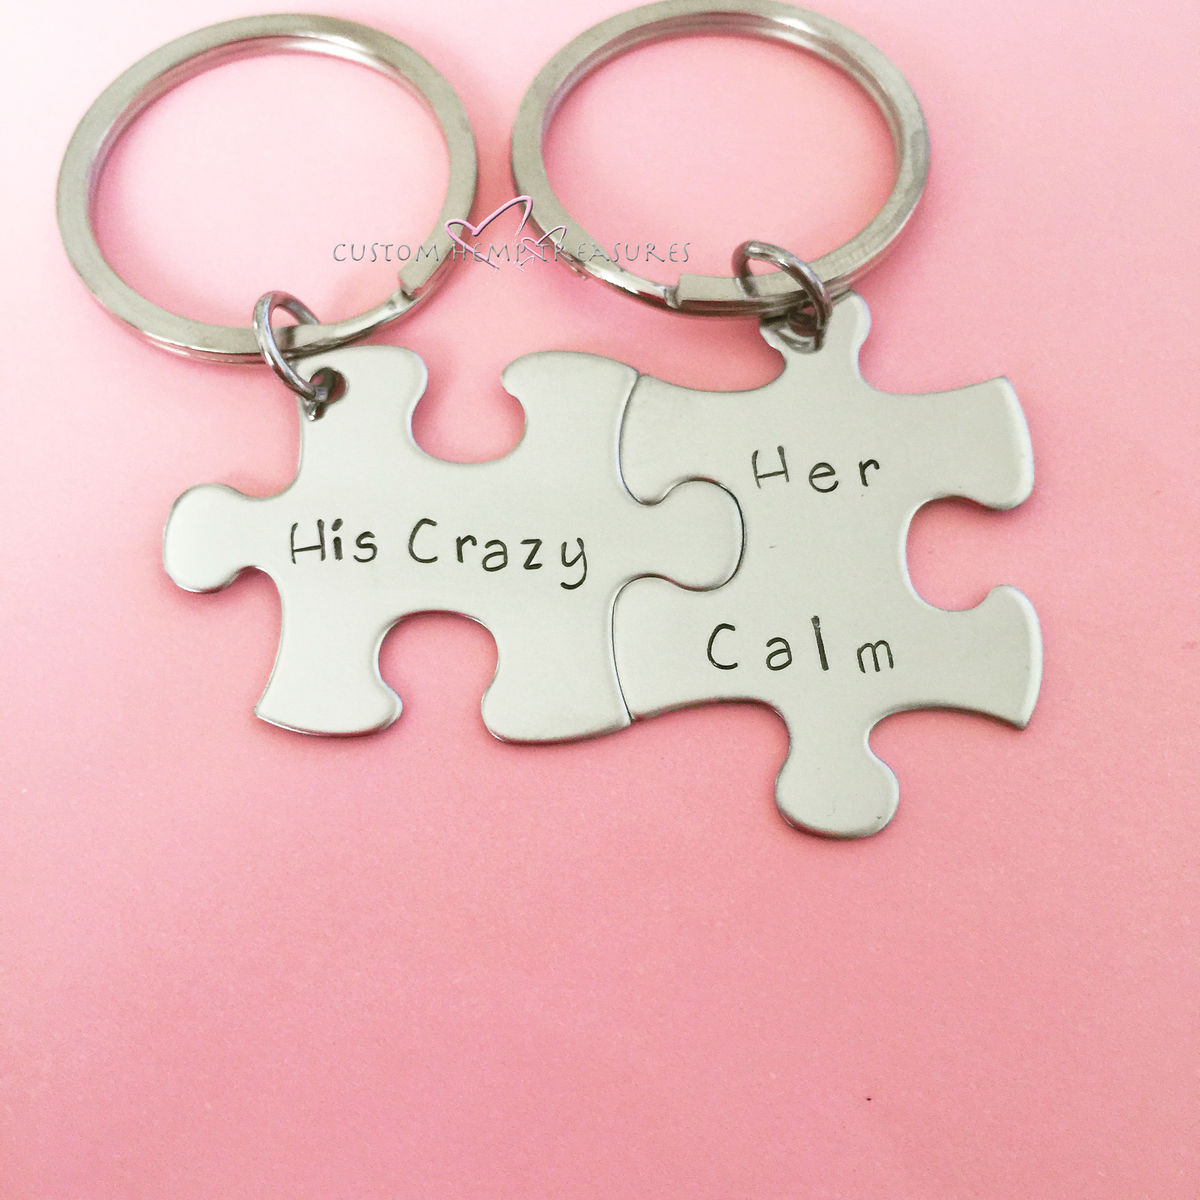 His Crazy Her Calm Keychains - product image